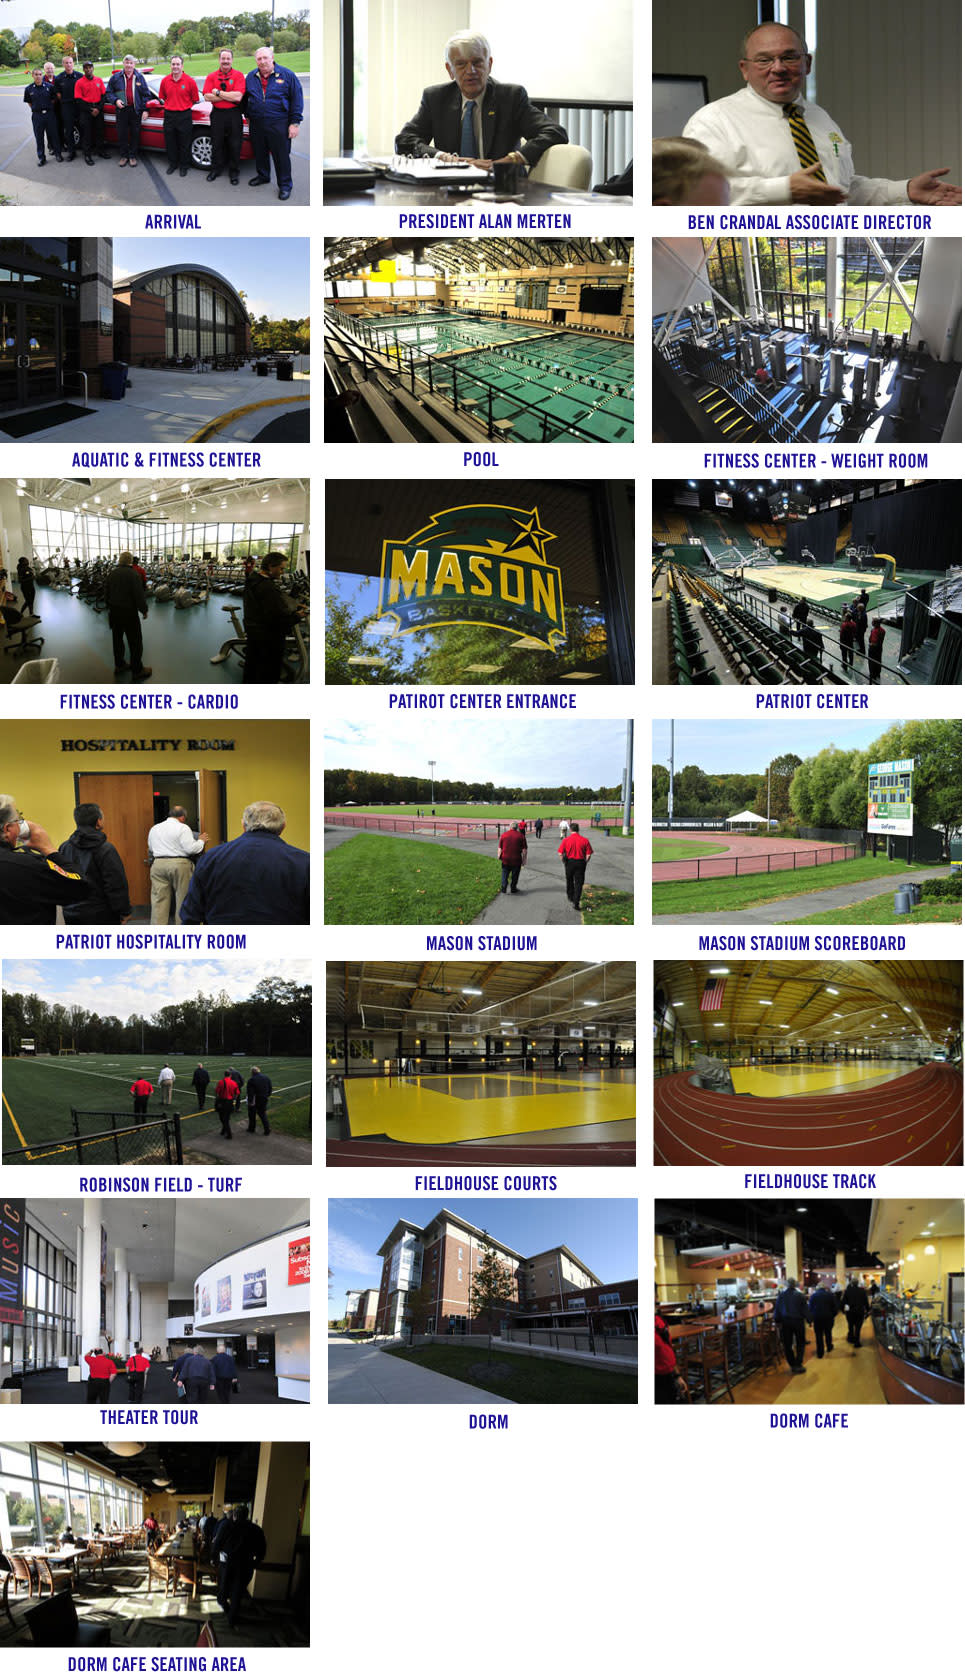 2015 World Police & Fire Games Site Inspection: GMU Image Gallery